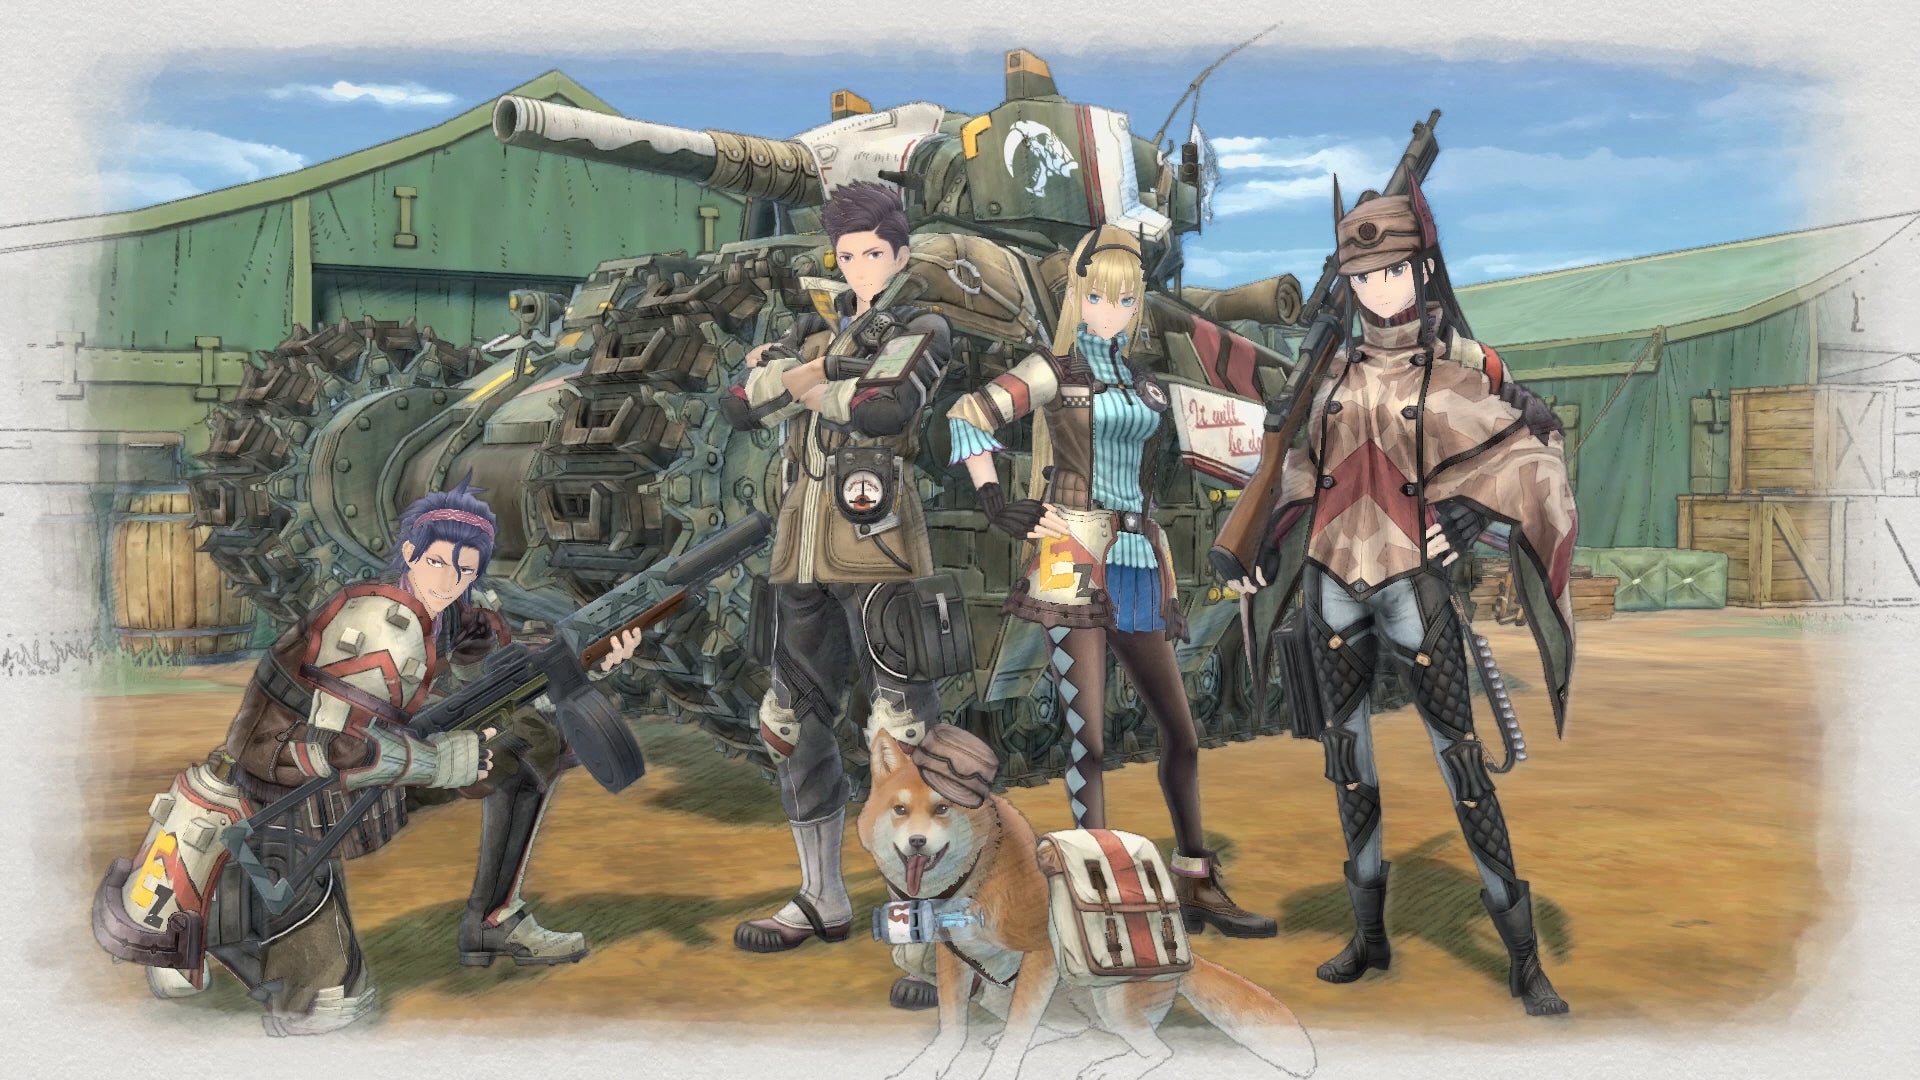 Valkyria Chronicles 4 Returns To The Series' Roots In 2018